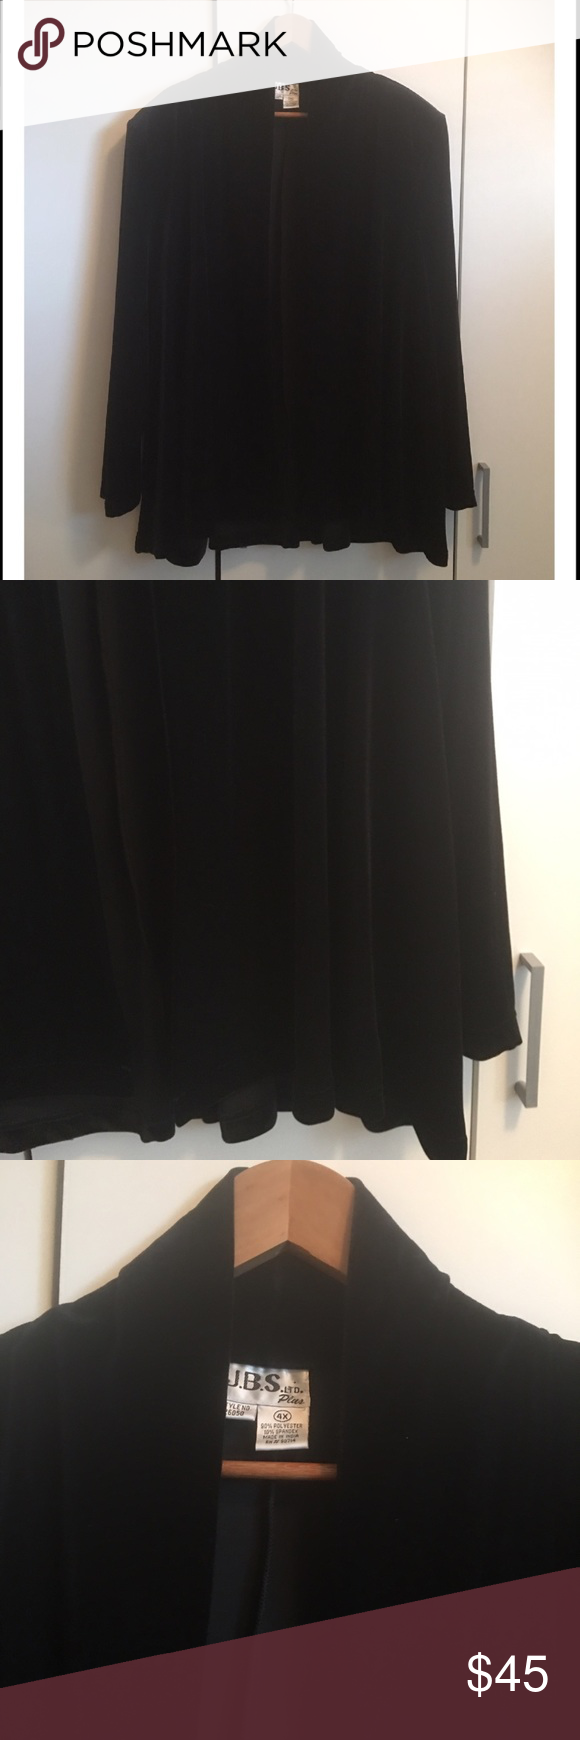 """J.B.S Plus Black Velvet Drape Front Jacket J.B.S Plus Black Velvet Drape Front Jacket. Absolutely stunning! Great condition! Perfect as a holiday cover up. Can be dressed up or down. Polyester/Spandex blend. Size indicates 4X but can be worn by a size 2X to 4X. Velvet is back with a vengeance this season. Grab this beauty before it's gone! Length 29"""". J.B.S Plus Jackets & Coats Blazers"""